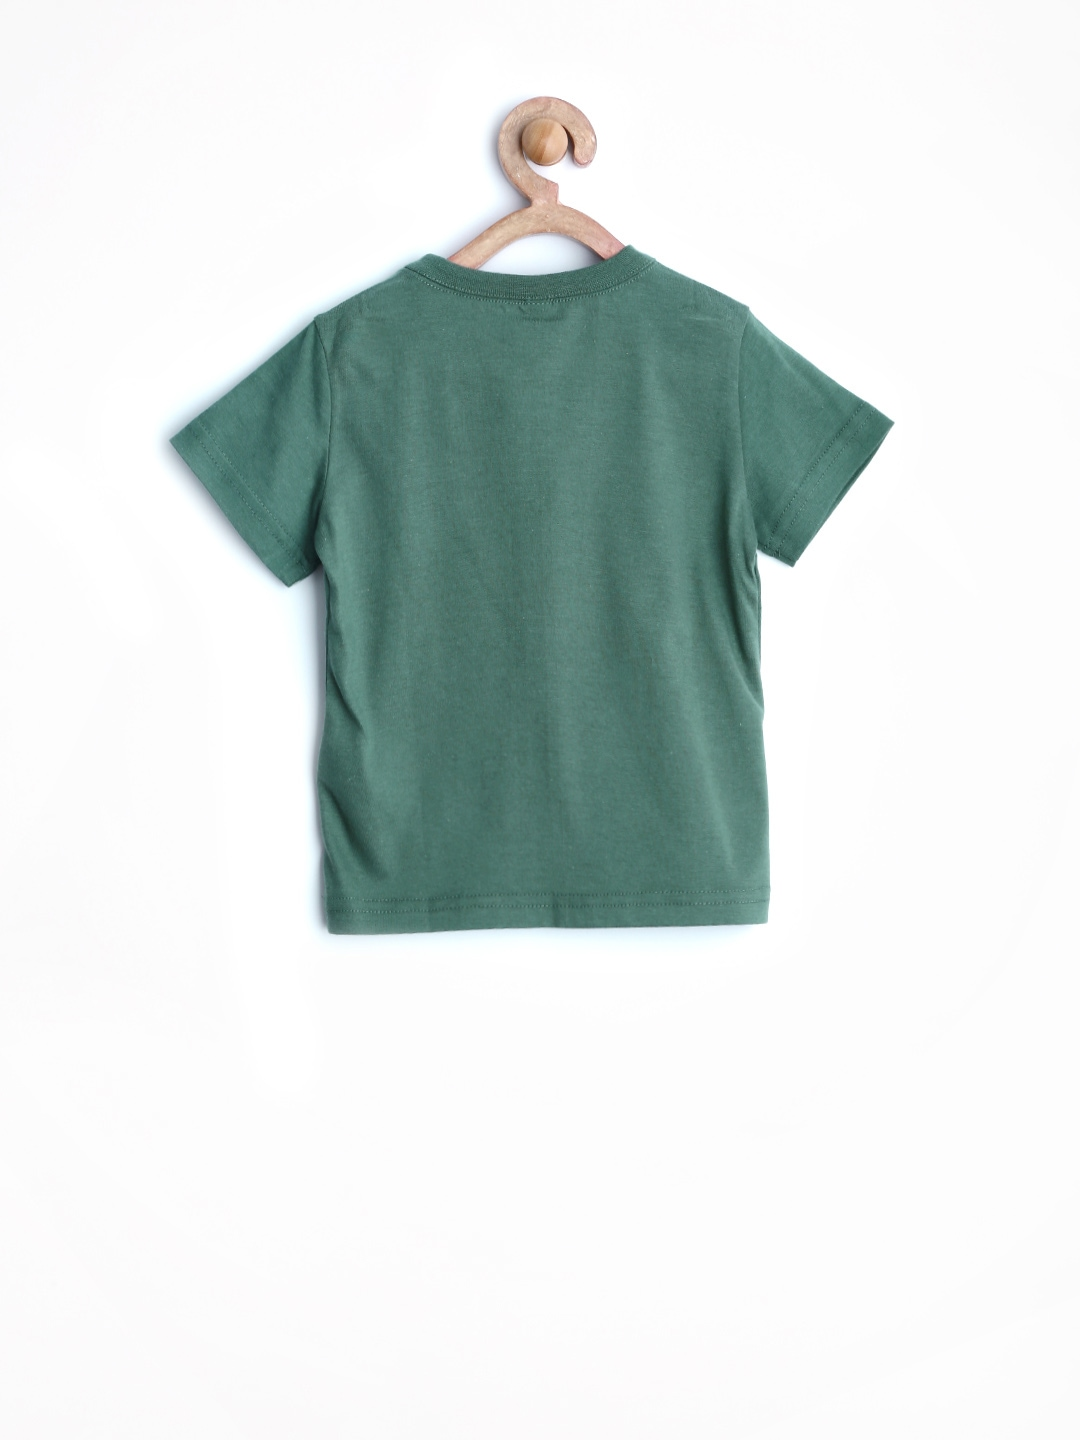 Myntra united colors of benetton boys teal green printed t for Boys teal t shirt